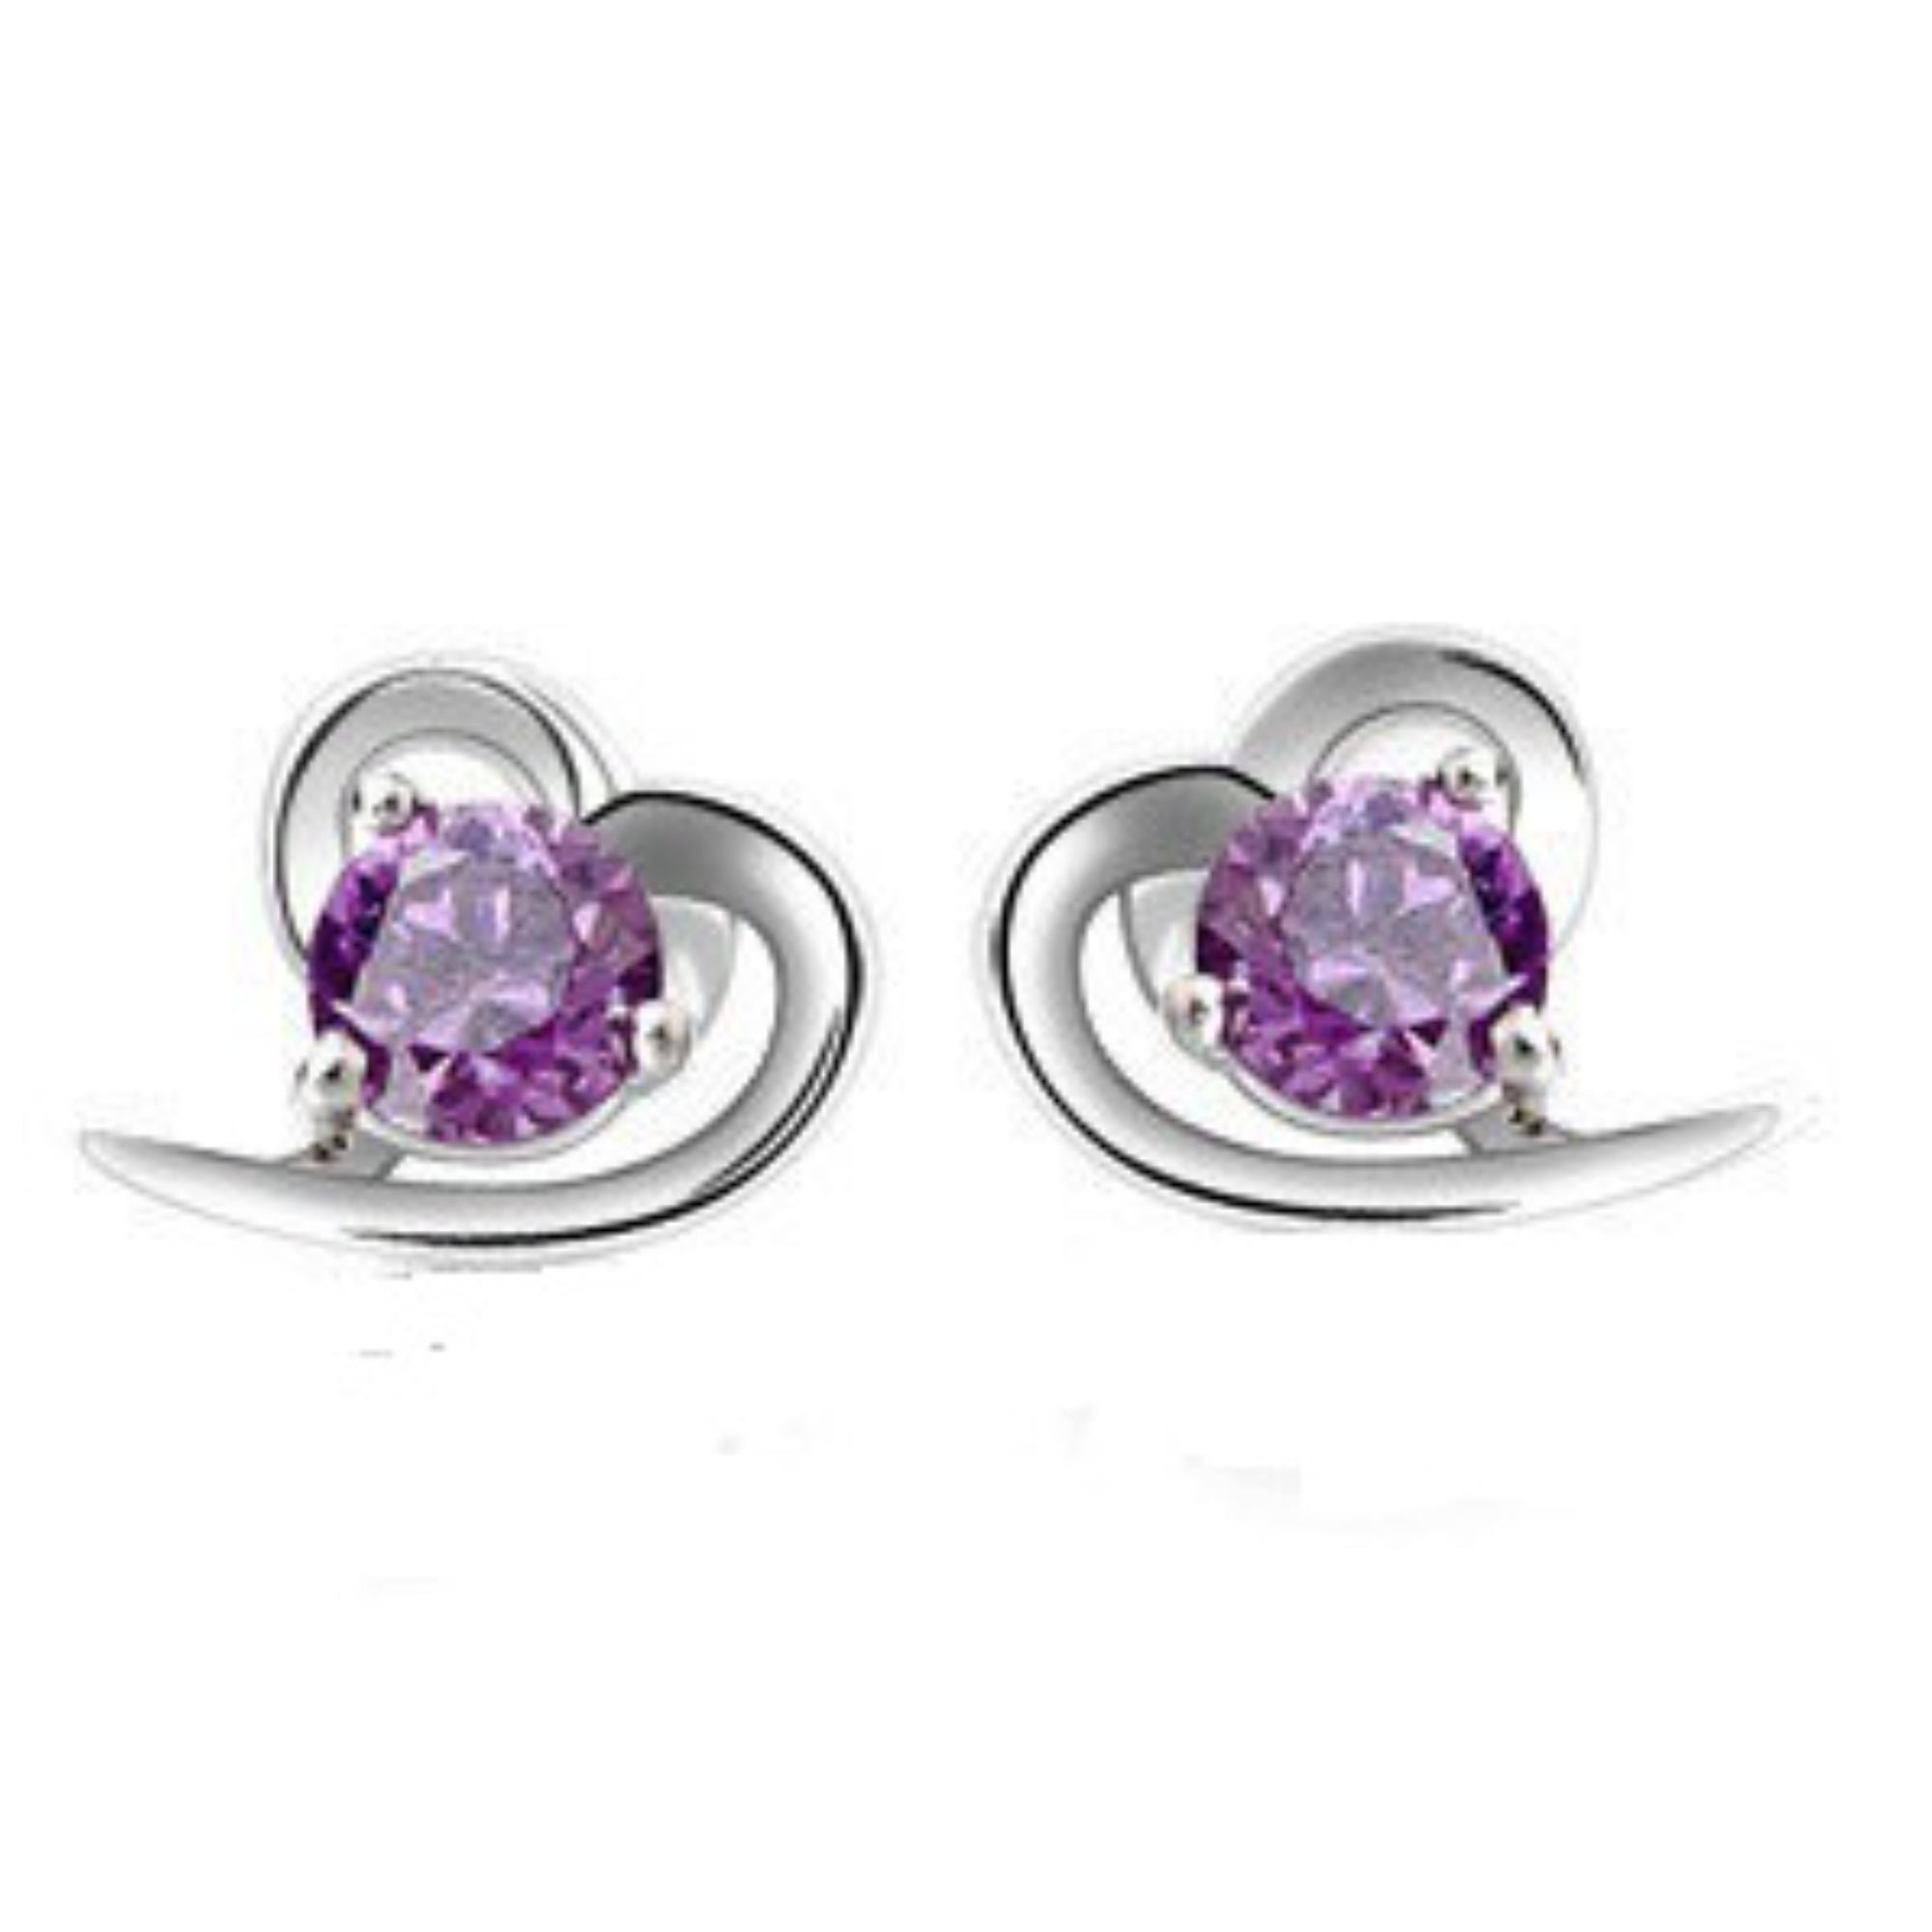 Heart Shaped Amethyst STUD EARRINGS Inlaid Sterling Silver Plated